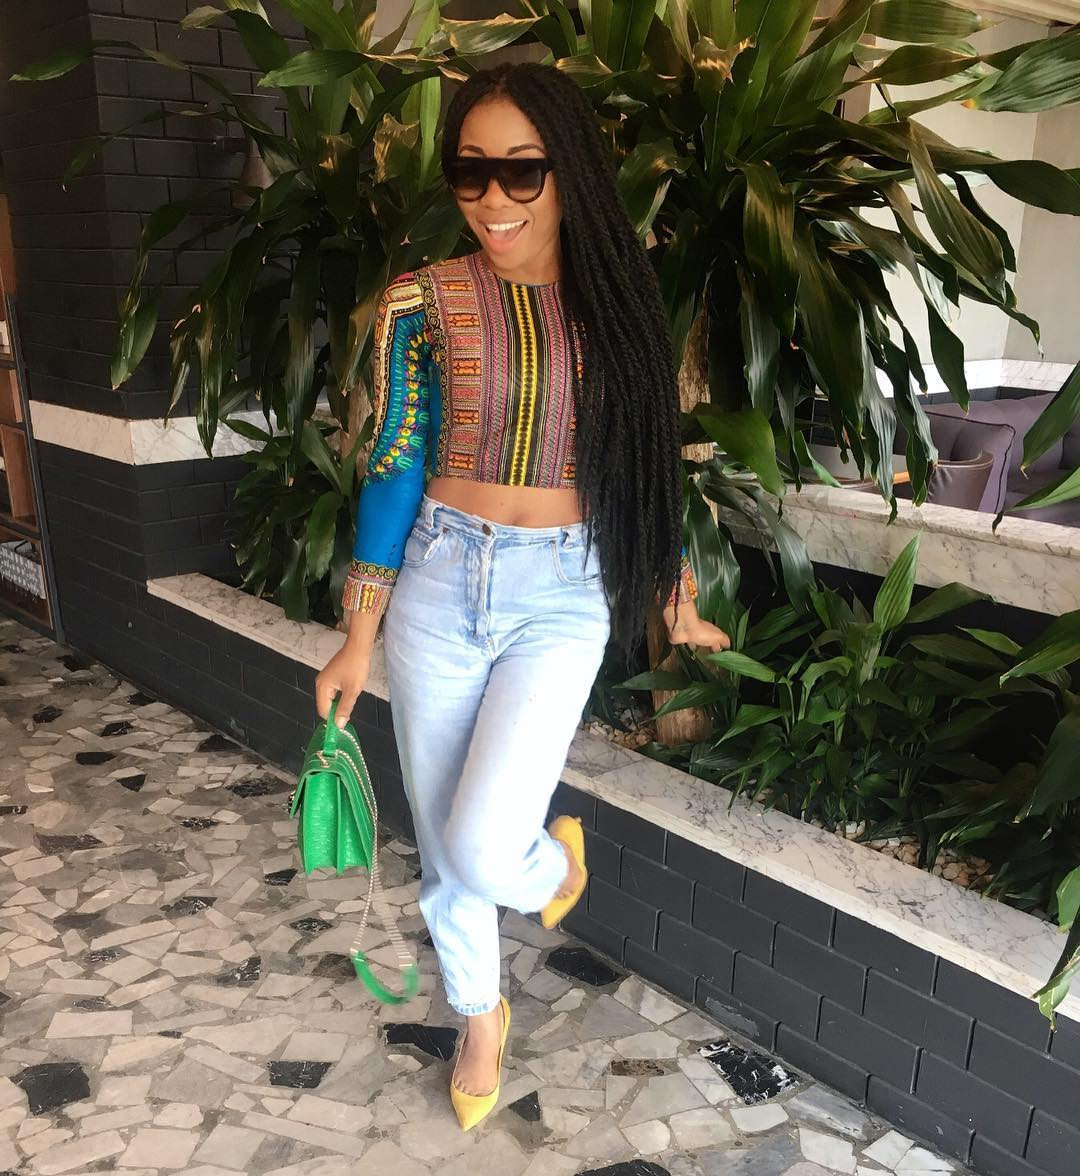 mo cheddah3 - Mo Cheddah Shows Us The Right Way To Wear Print